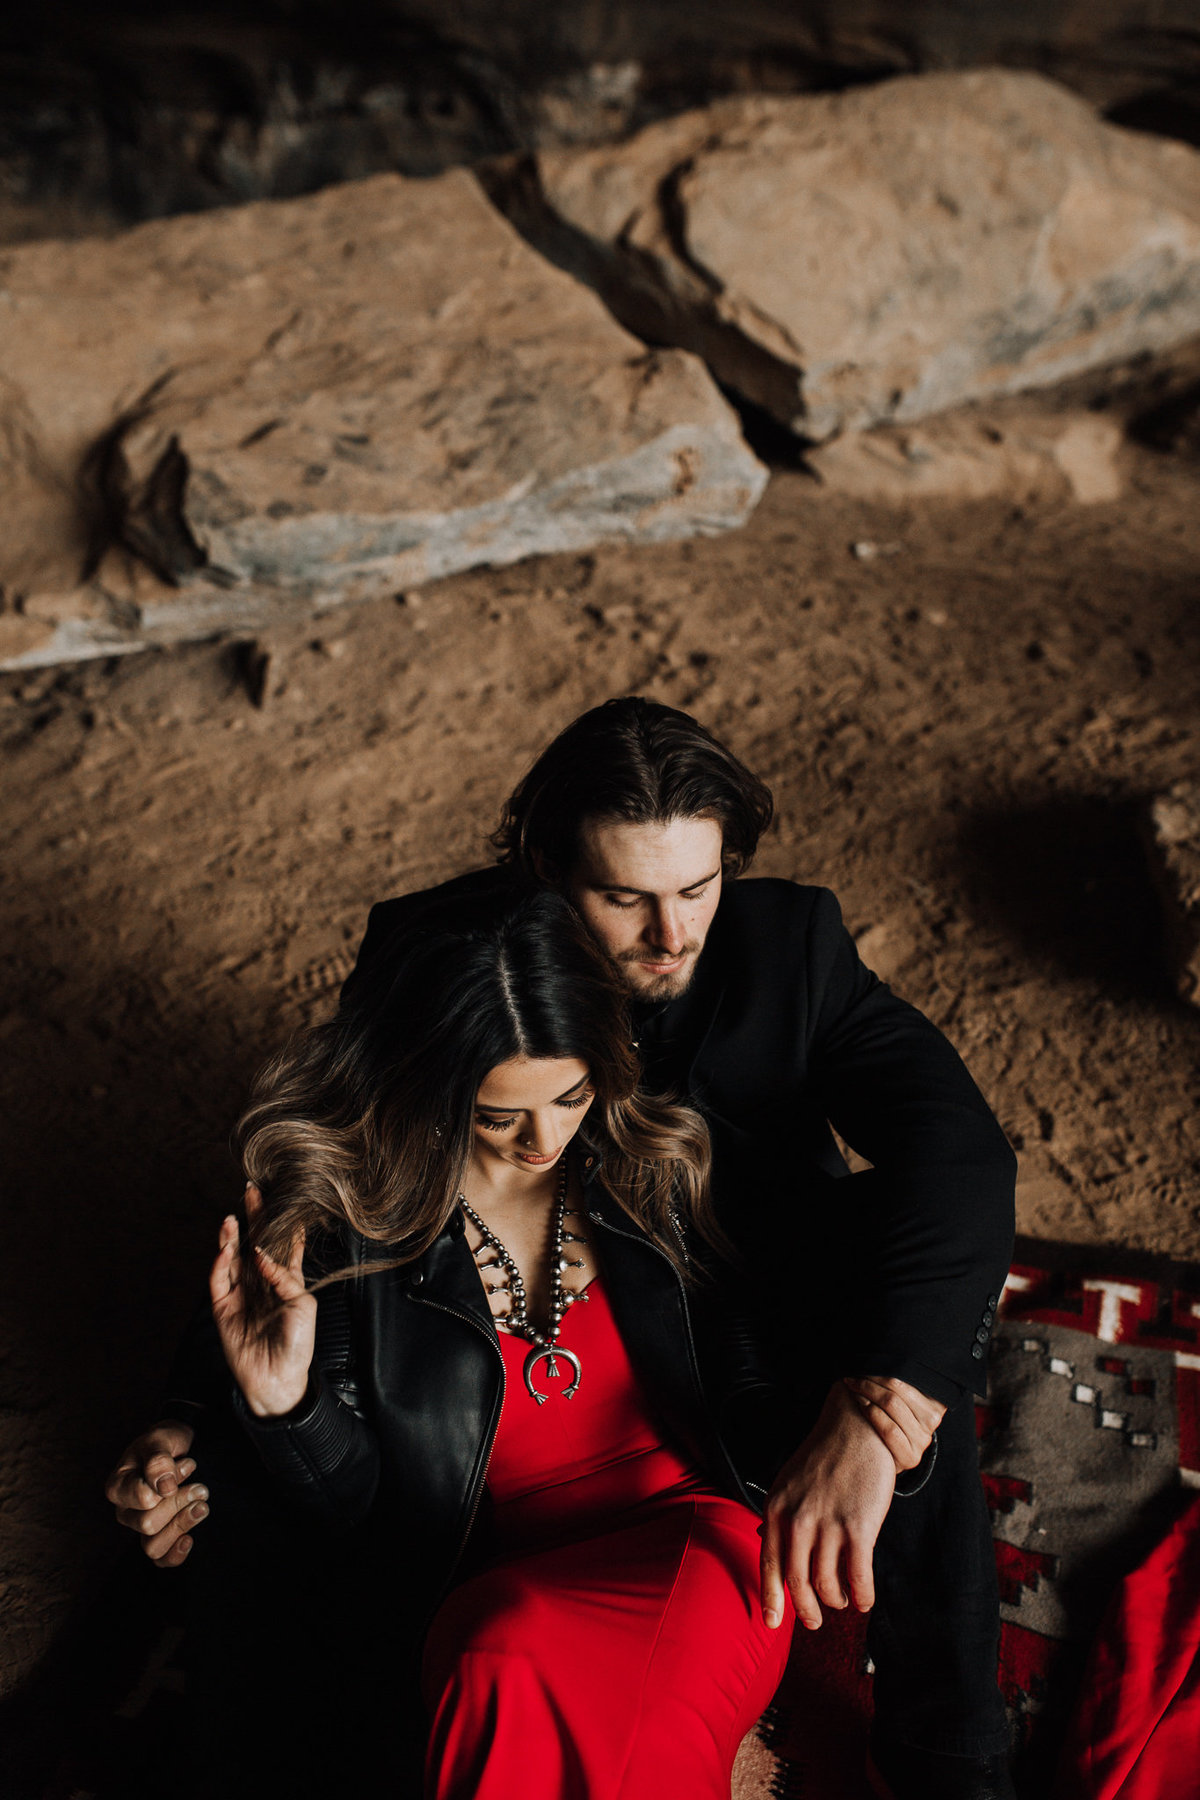 fernanda-and-great-petit-jean-state-park-arkansas-adventerous-couples-engagement-session-21